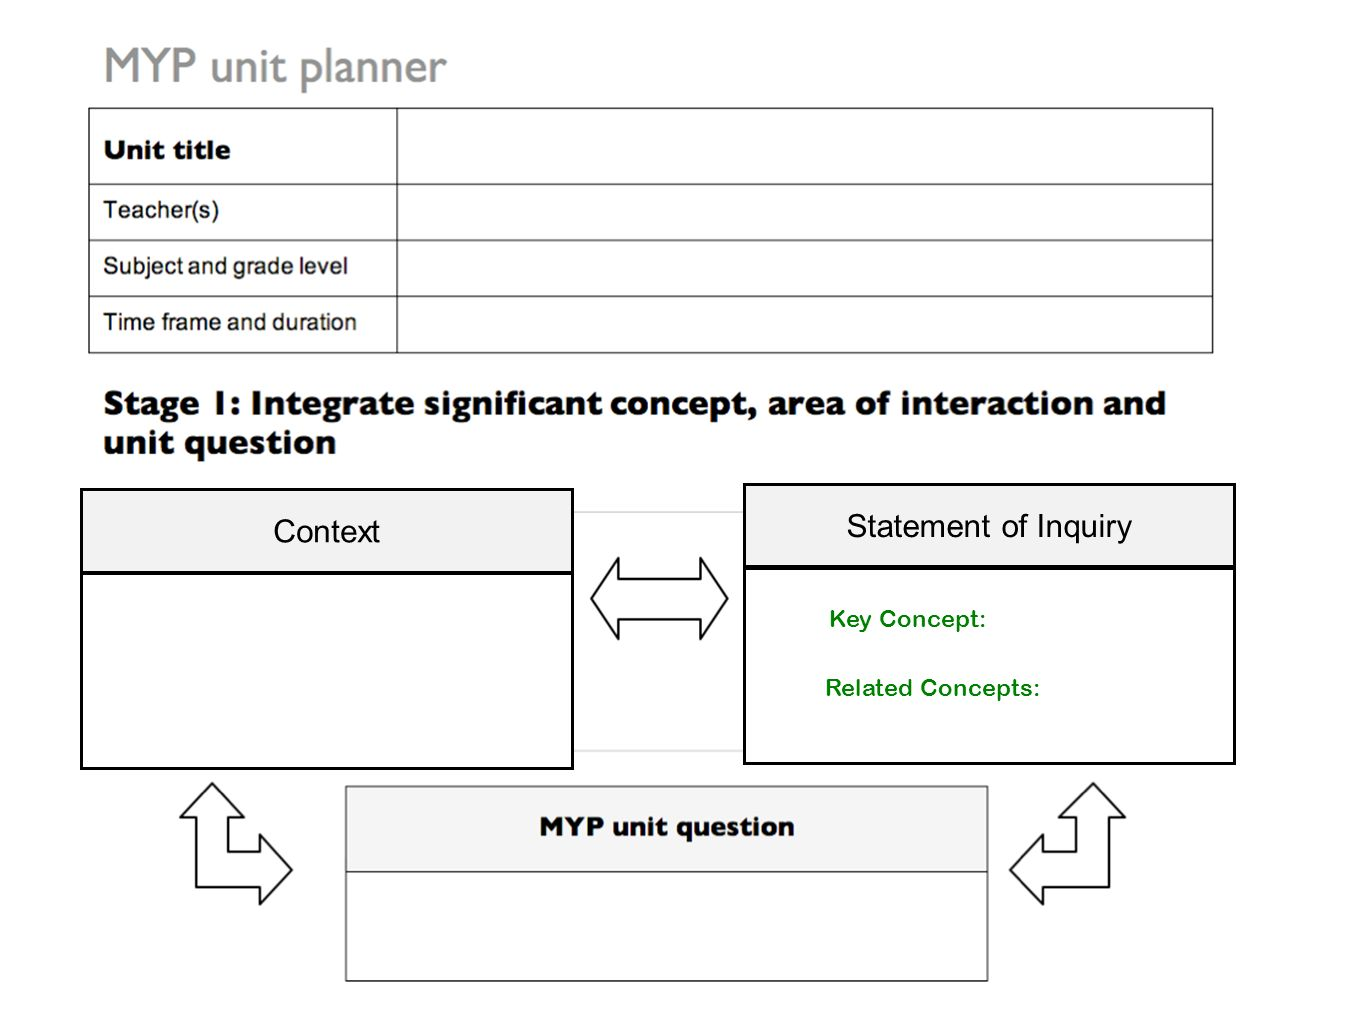 Context Statement of Inquiry Key Concept: Related Concepts: